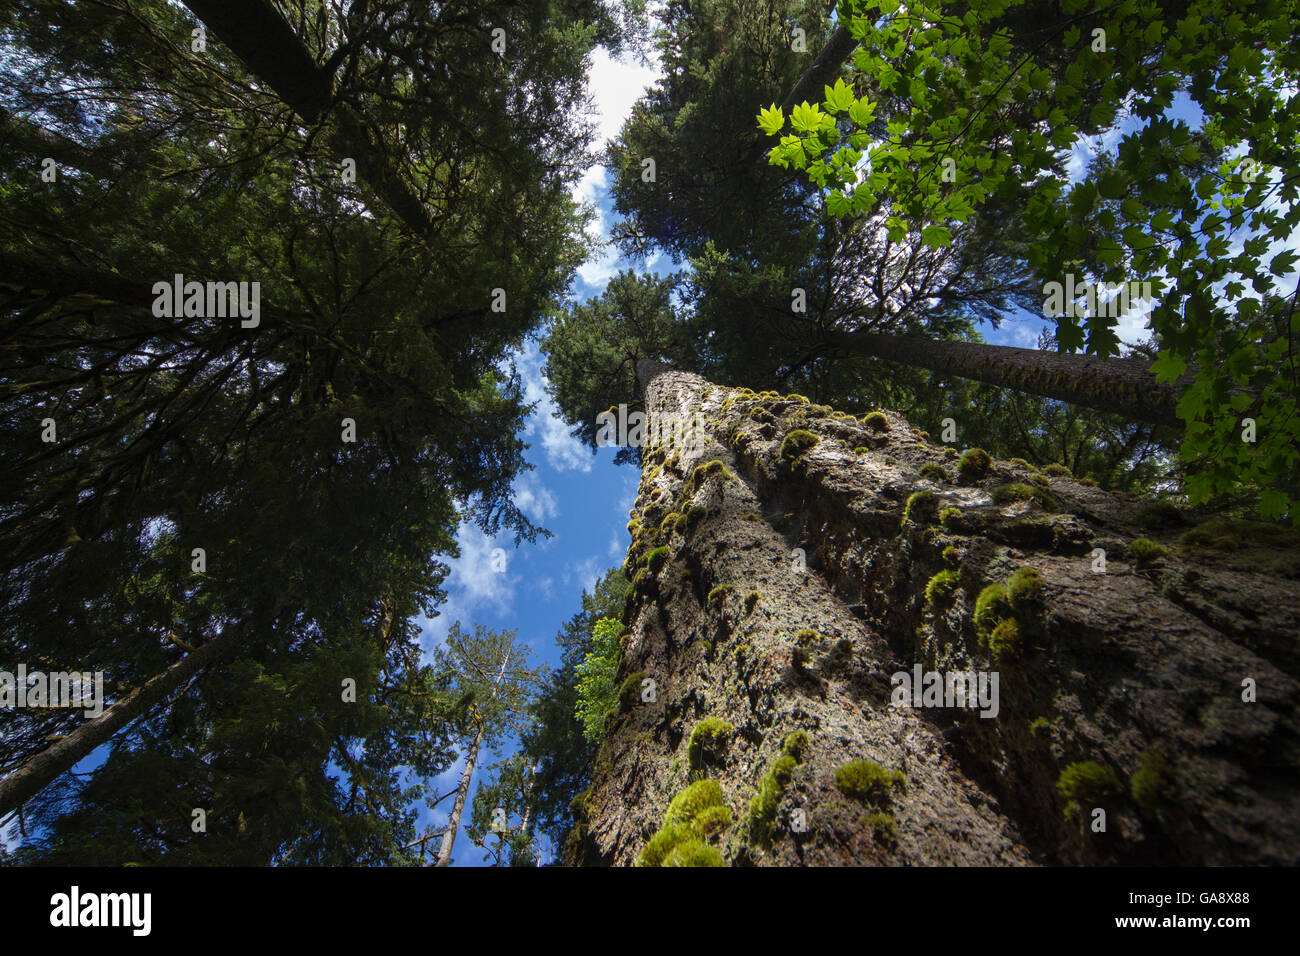 Low angle view of trees in the Hoh Rainforest, Hall of Mosses Trail, Olympic National Park, Jefferson County, Washington, - Stock Image